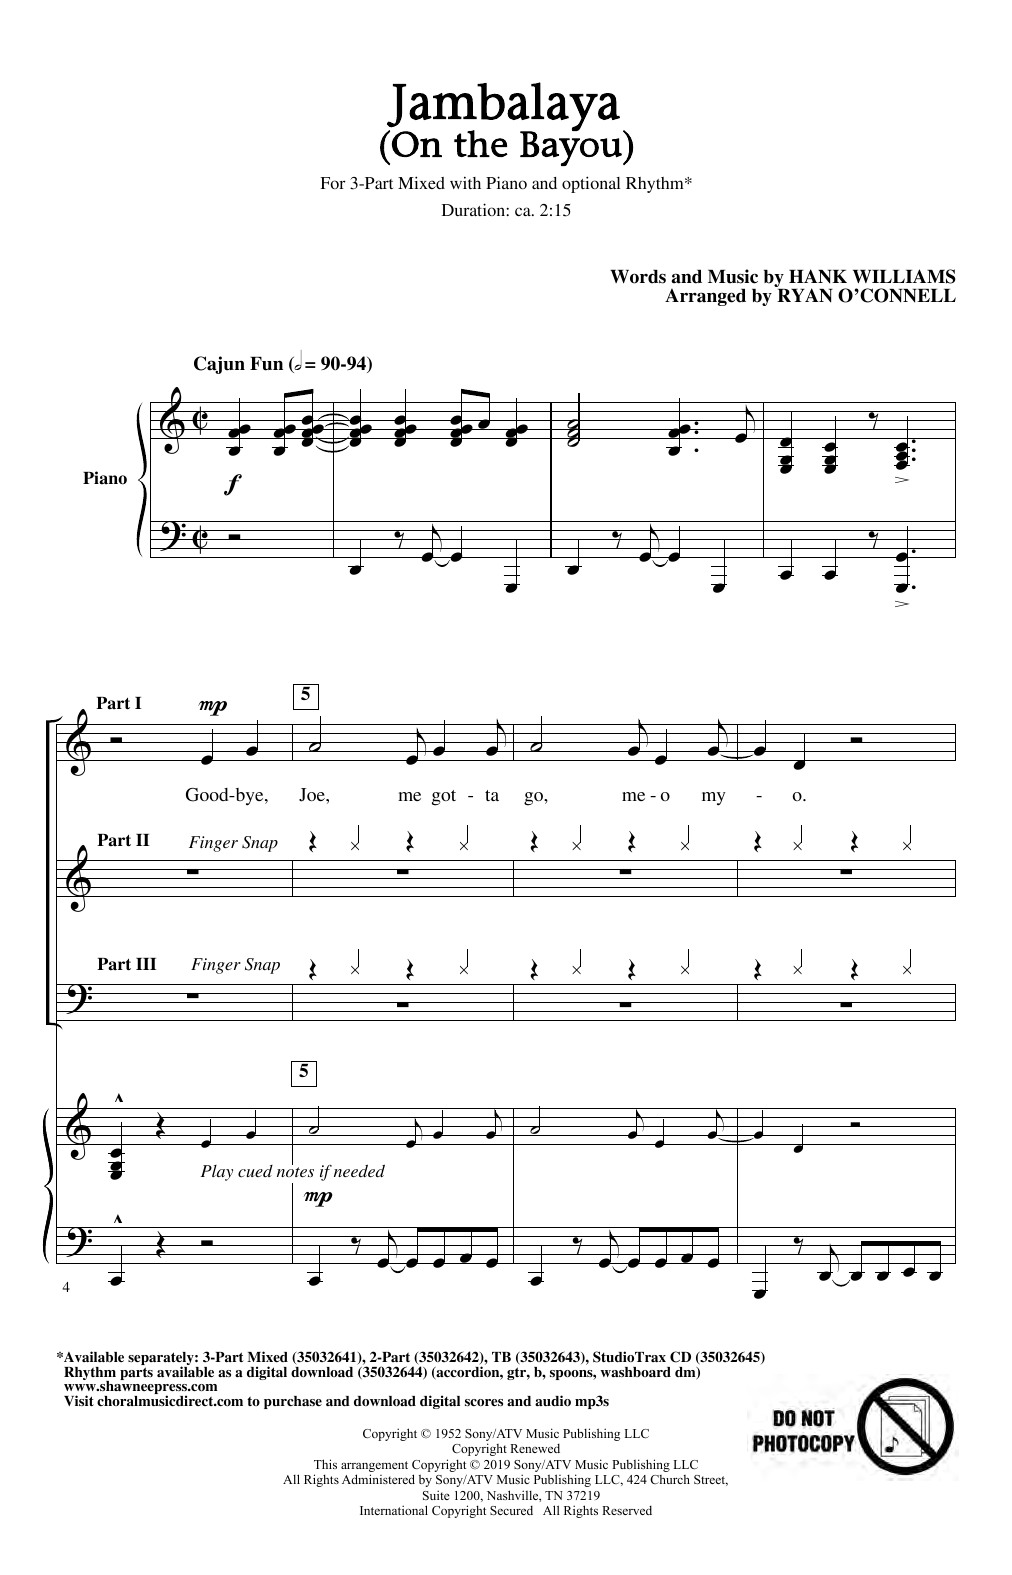 Download Hank Williams 'Jambalaya (On The Bayou) (arr. Ryan O'Connell)' Digital Sheet Music Notes & Chords and start playing in minutes